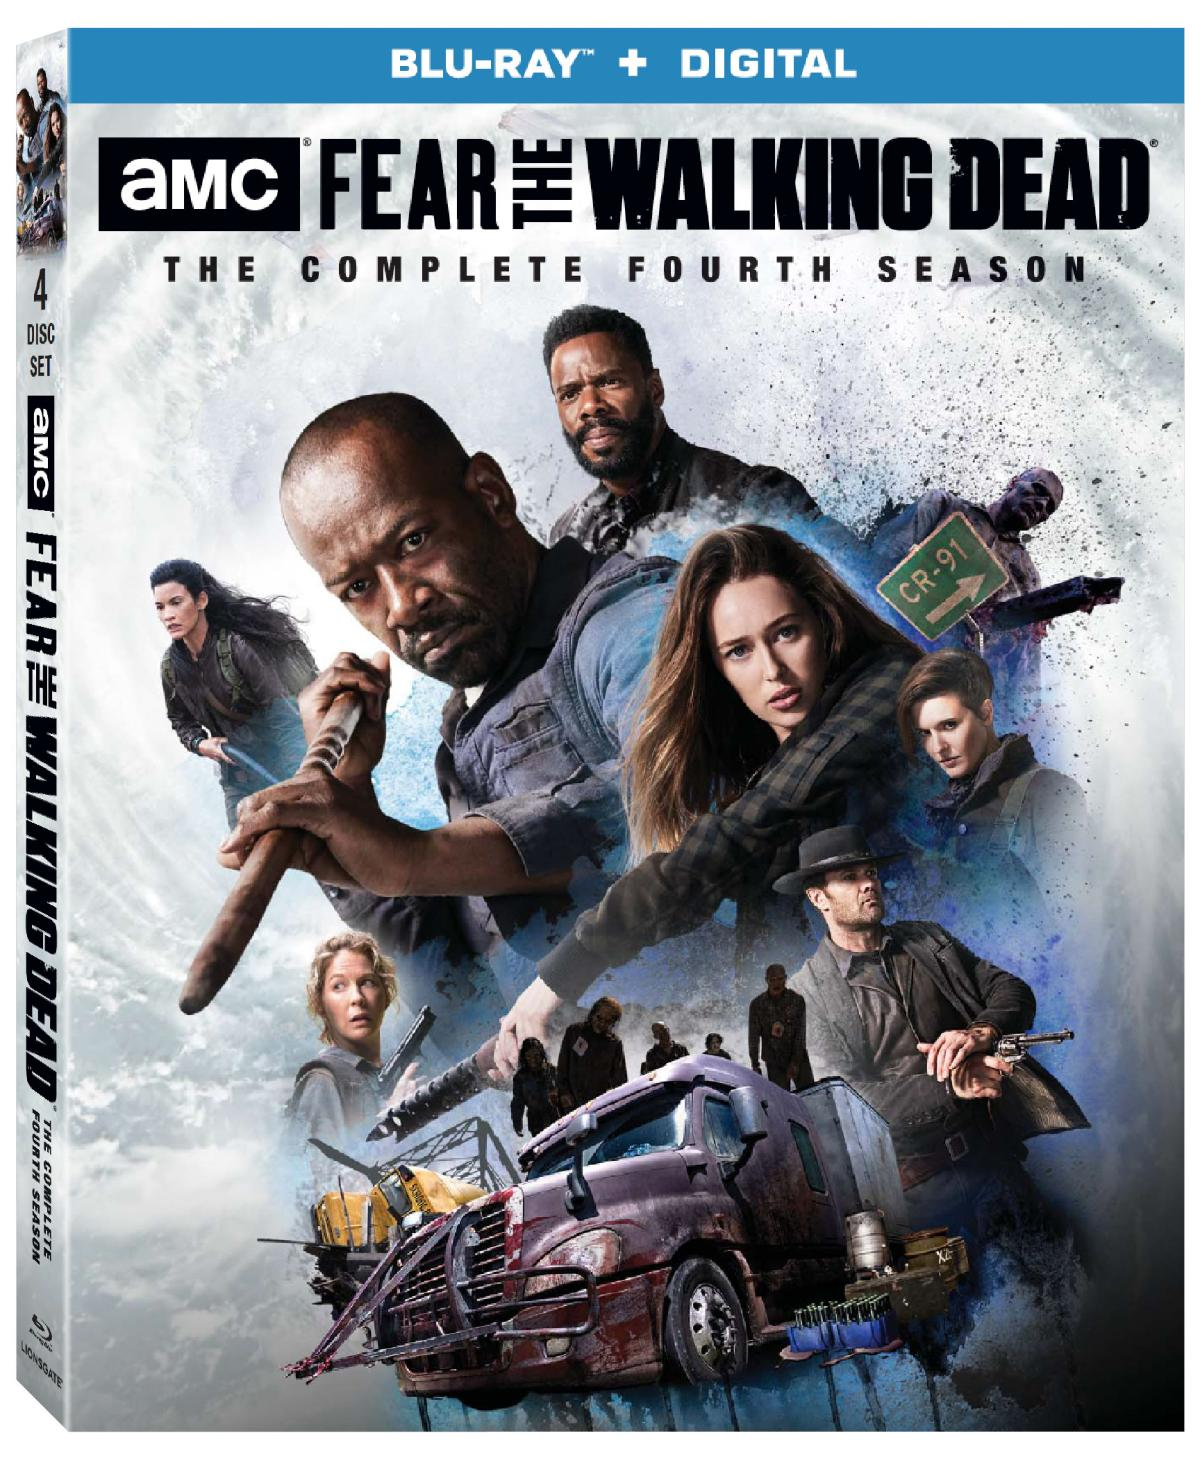 FEAR THE WALKING DEAD Season 4 Coming to Blu-ray and DVD on ...